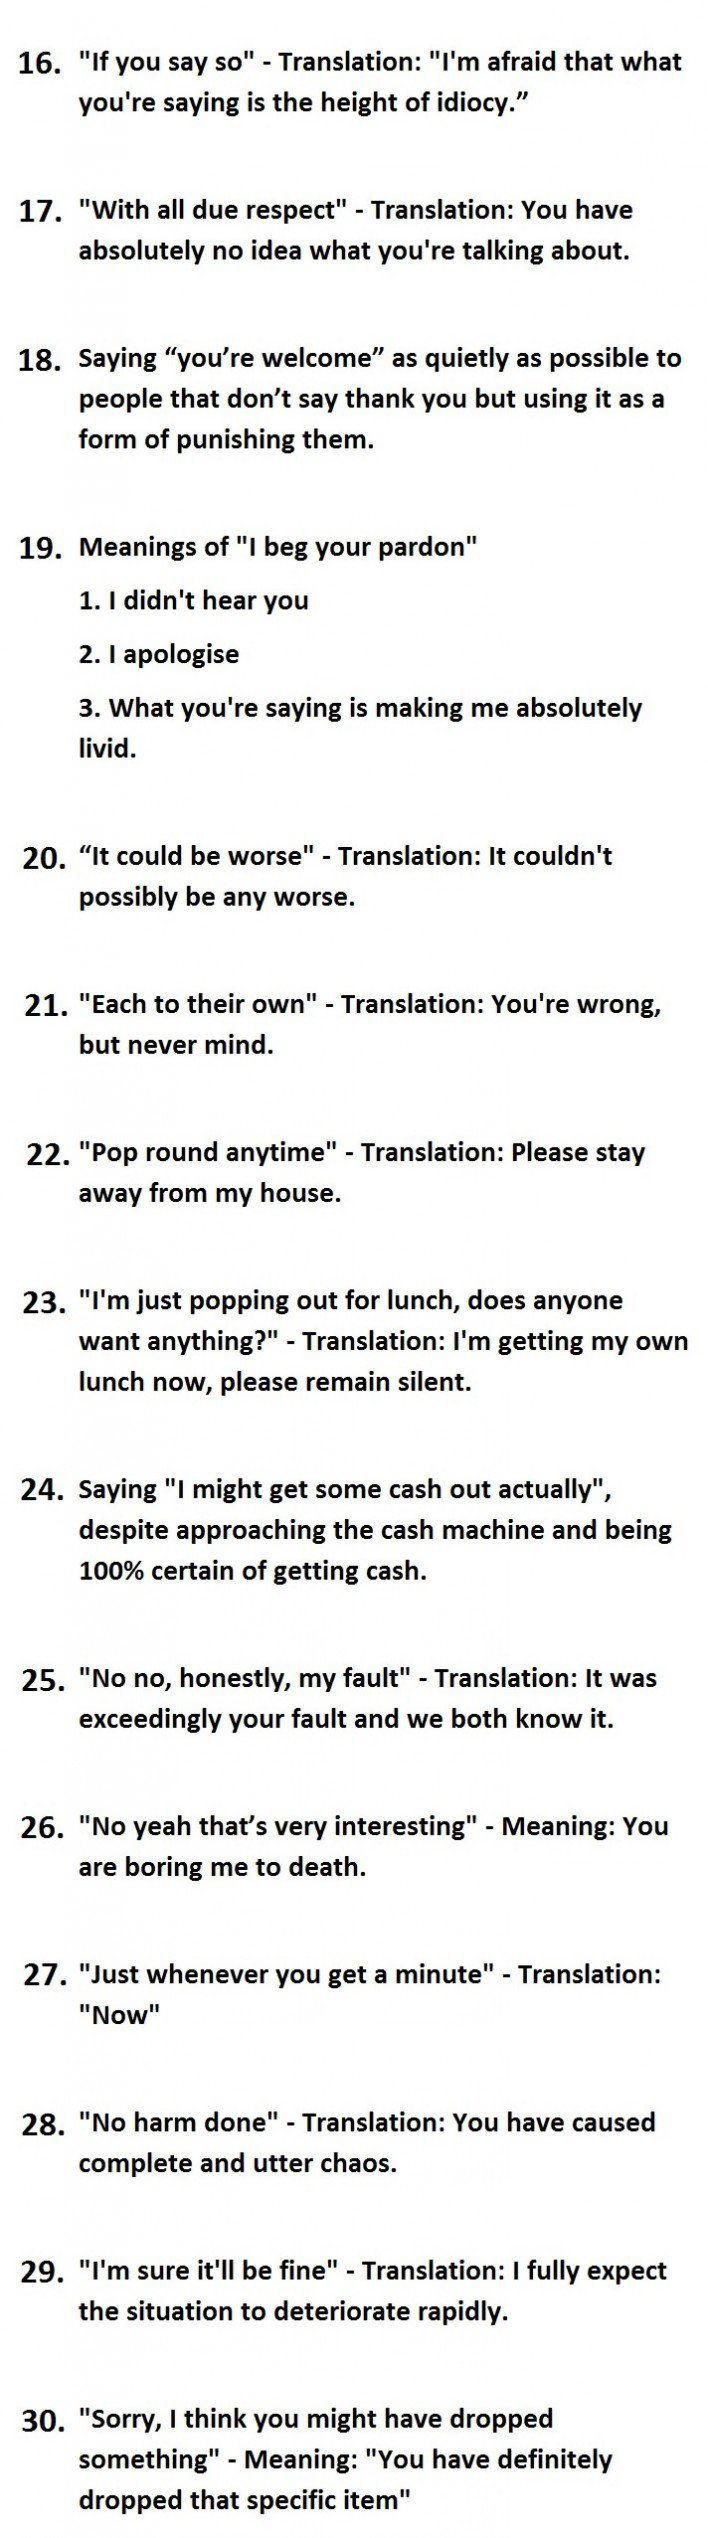 30 Things British People Say Vs What We Actually Mean. (Last 15 items)